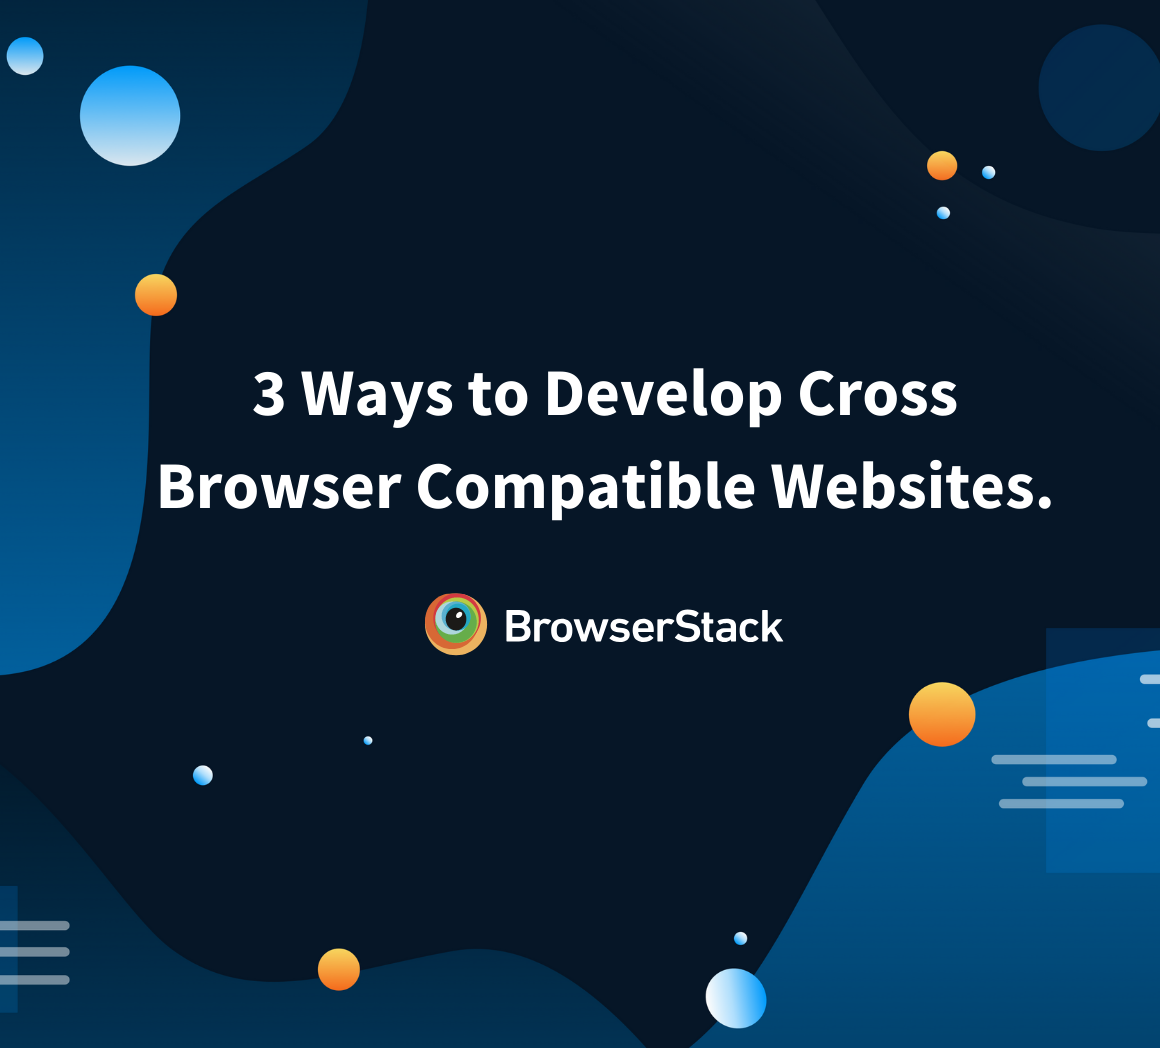 3 Ways to Develop Cross Browser Compatible Website